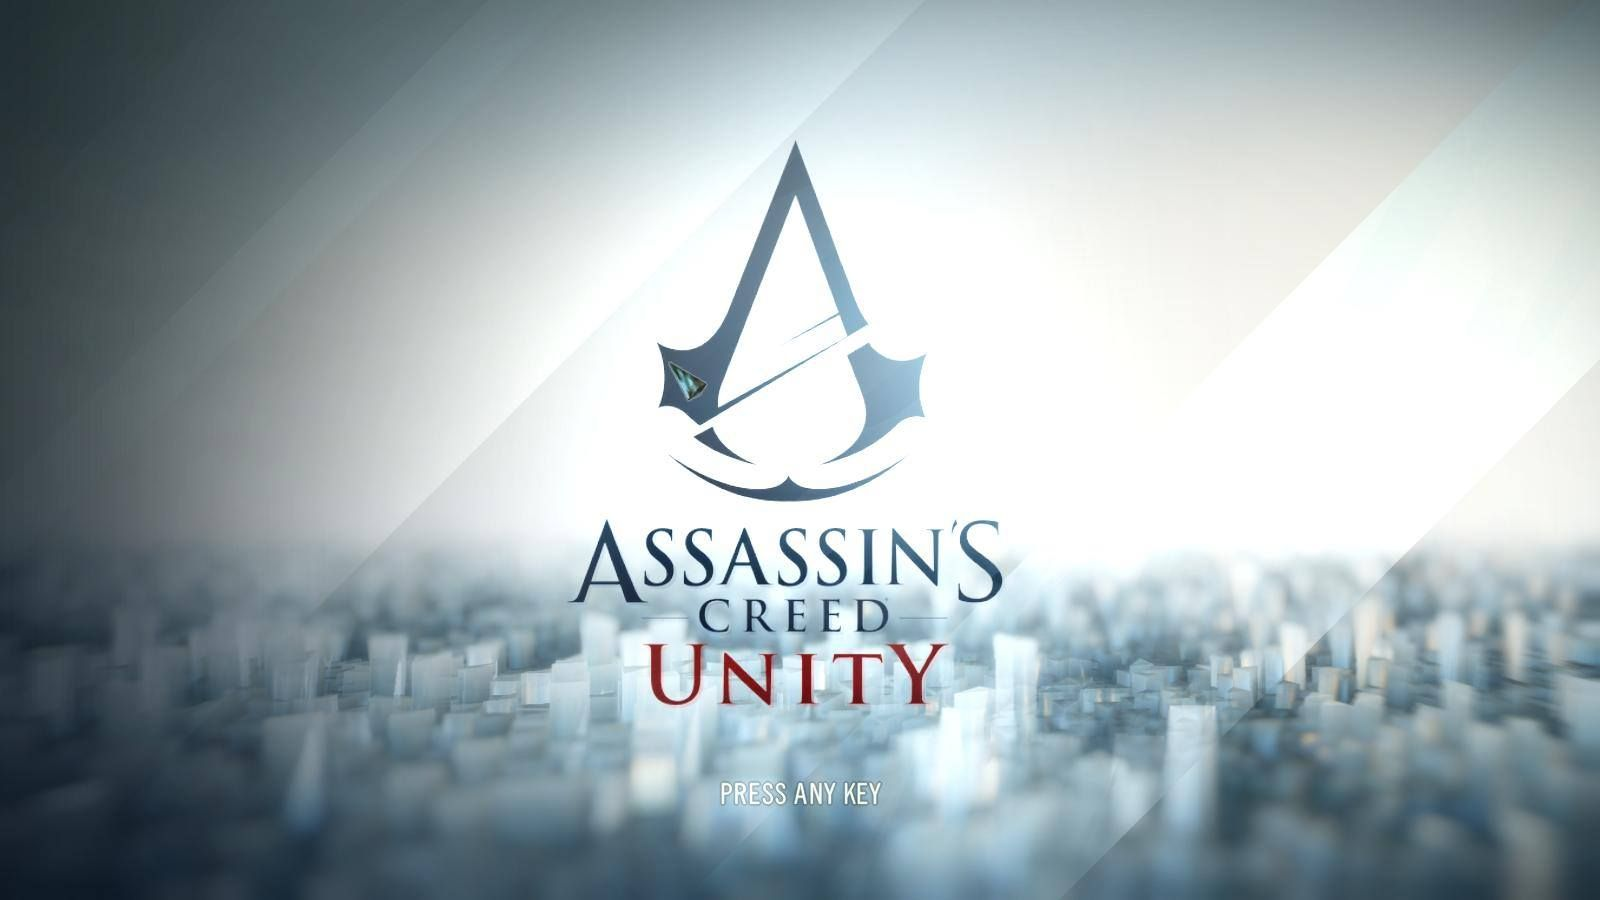 Assassins Creed Unity Review 8211 Tech4gamers Assassins Creed